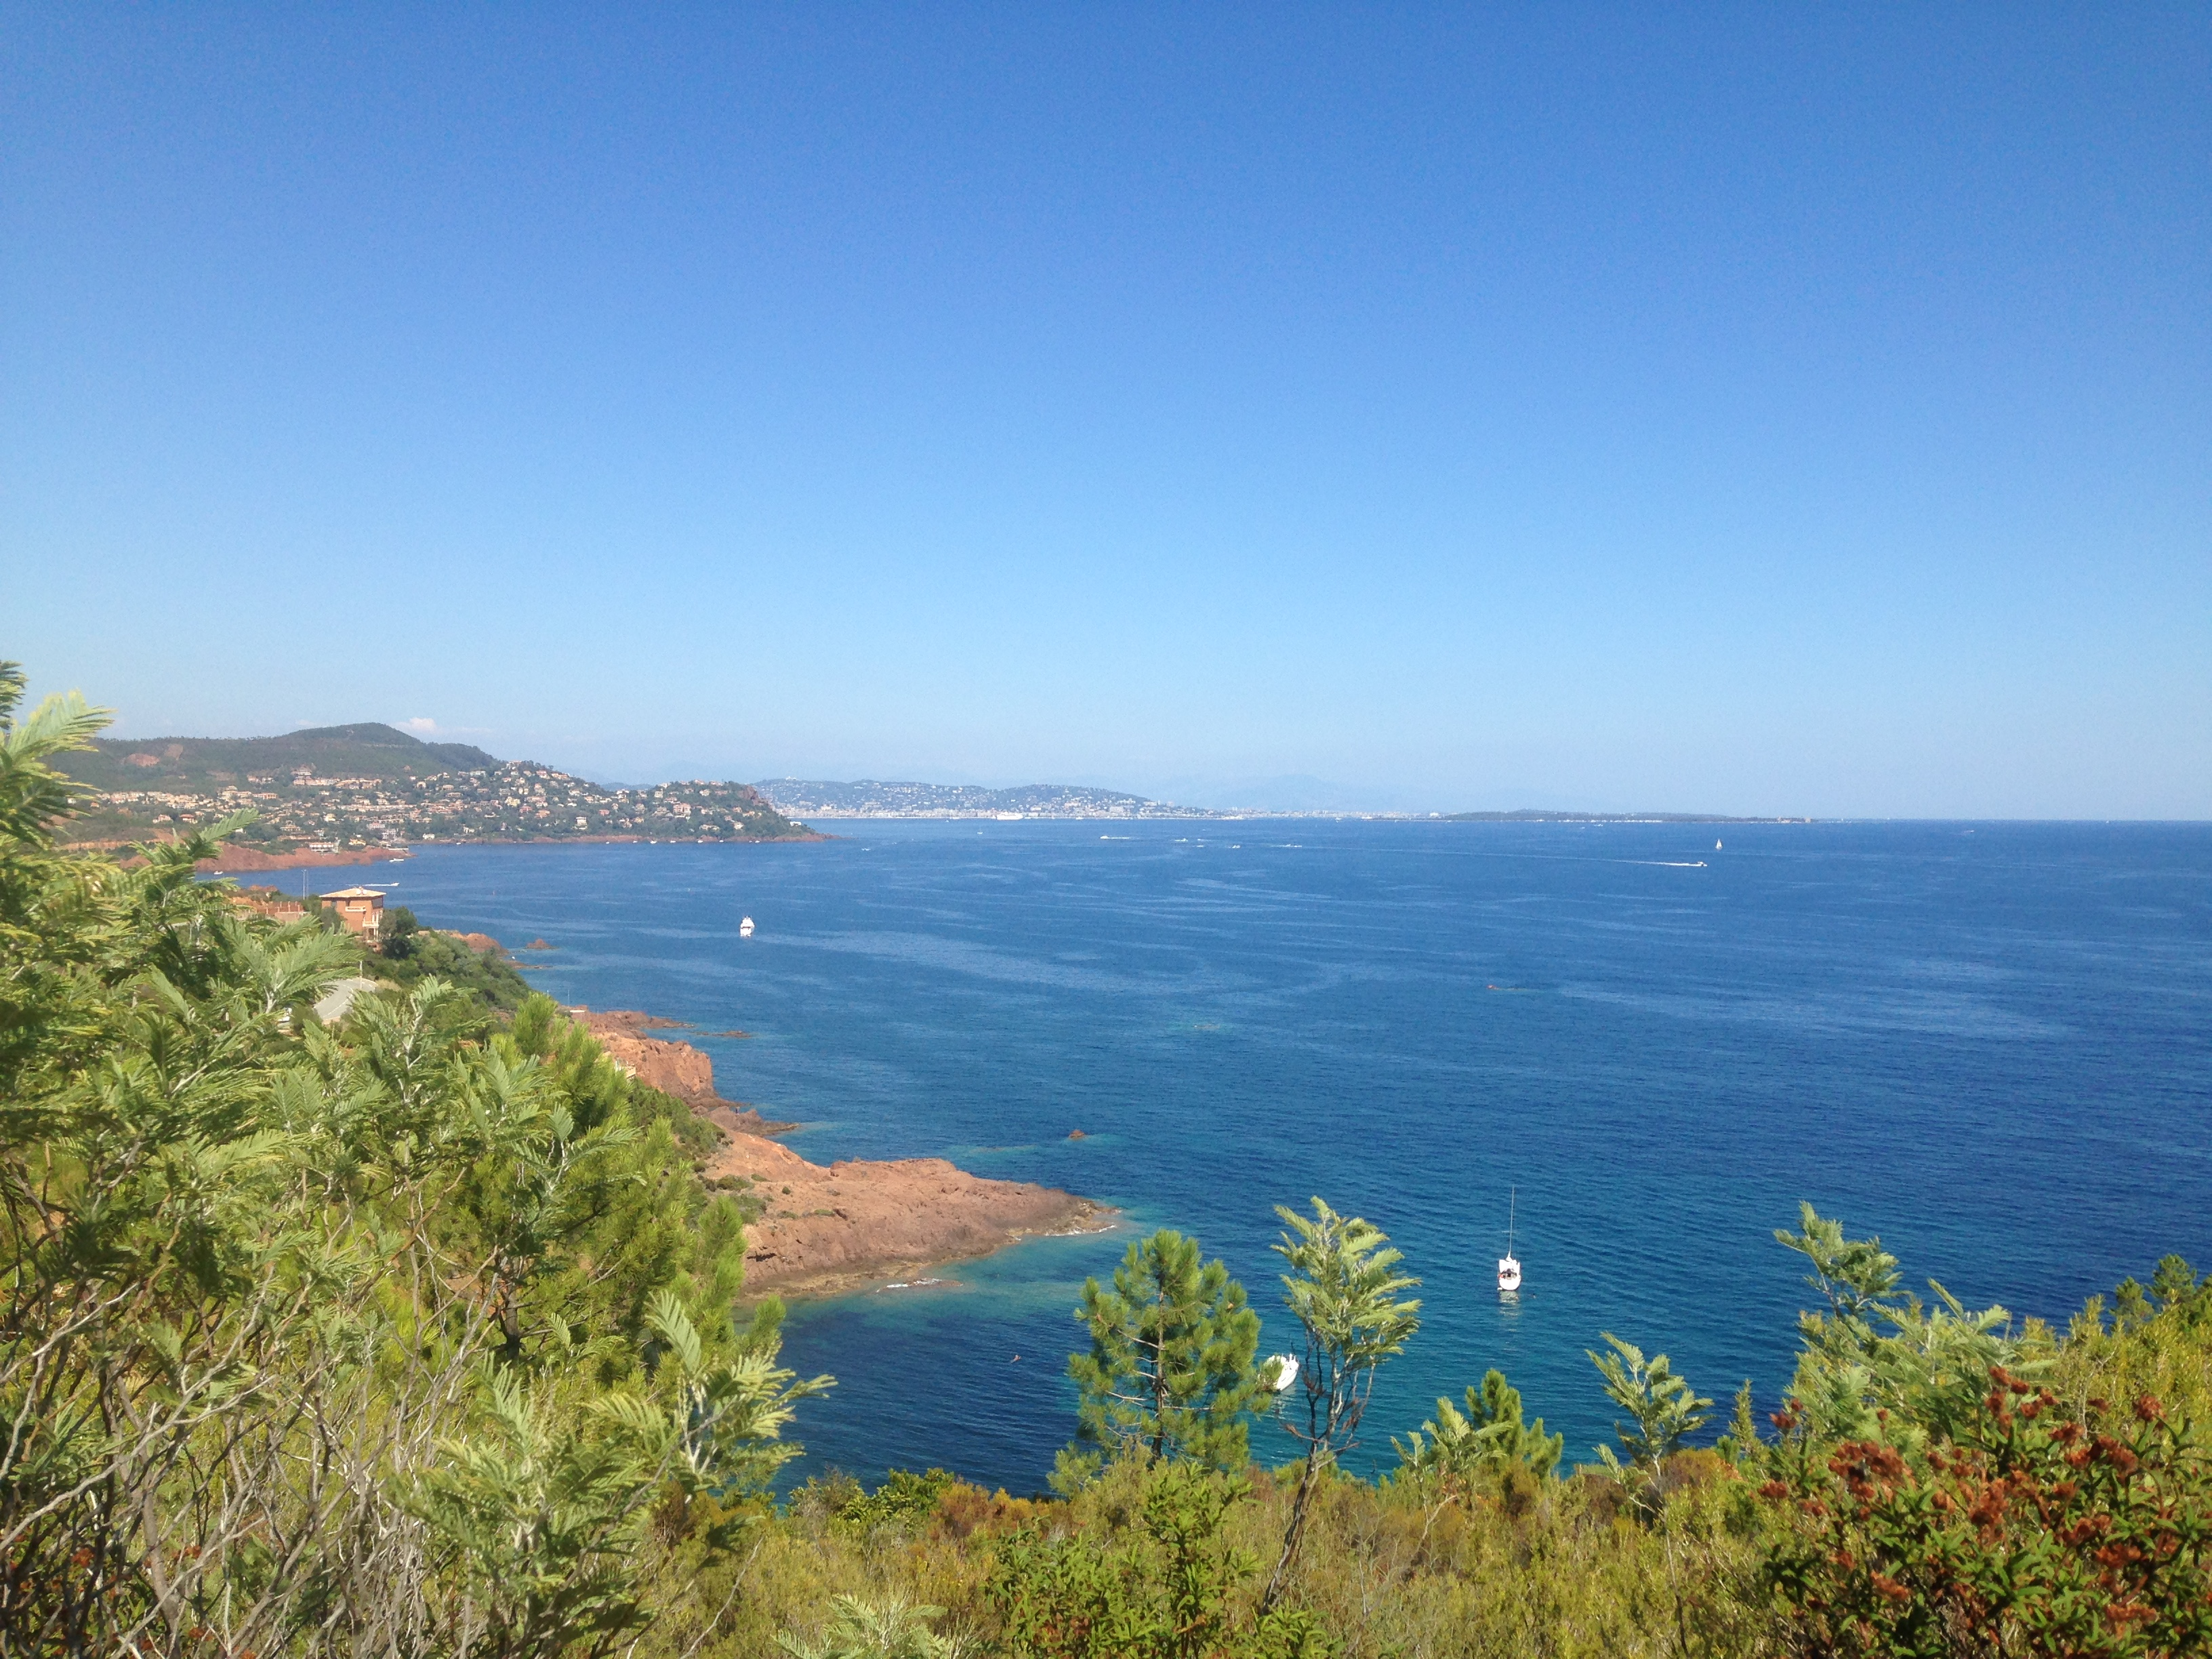 The Coastline From St Tropez To Antibes